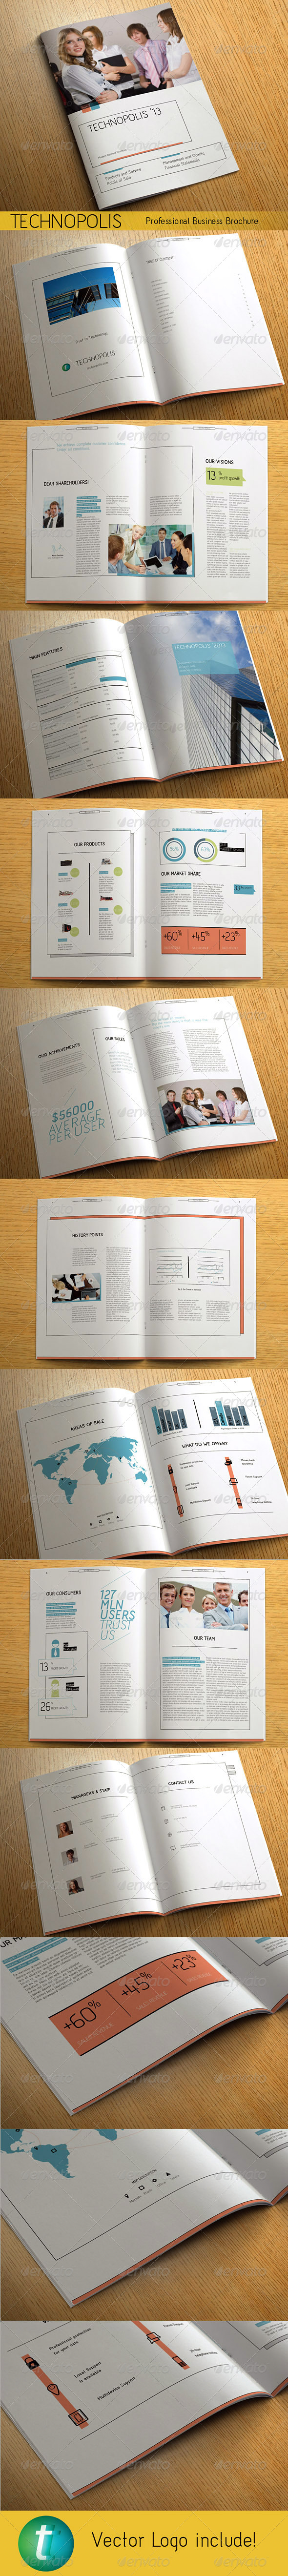 TECHNOPOLIS - Modern Business Brochure - Corporate Brochures